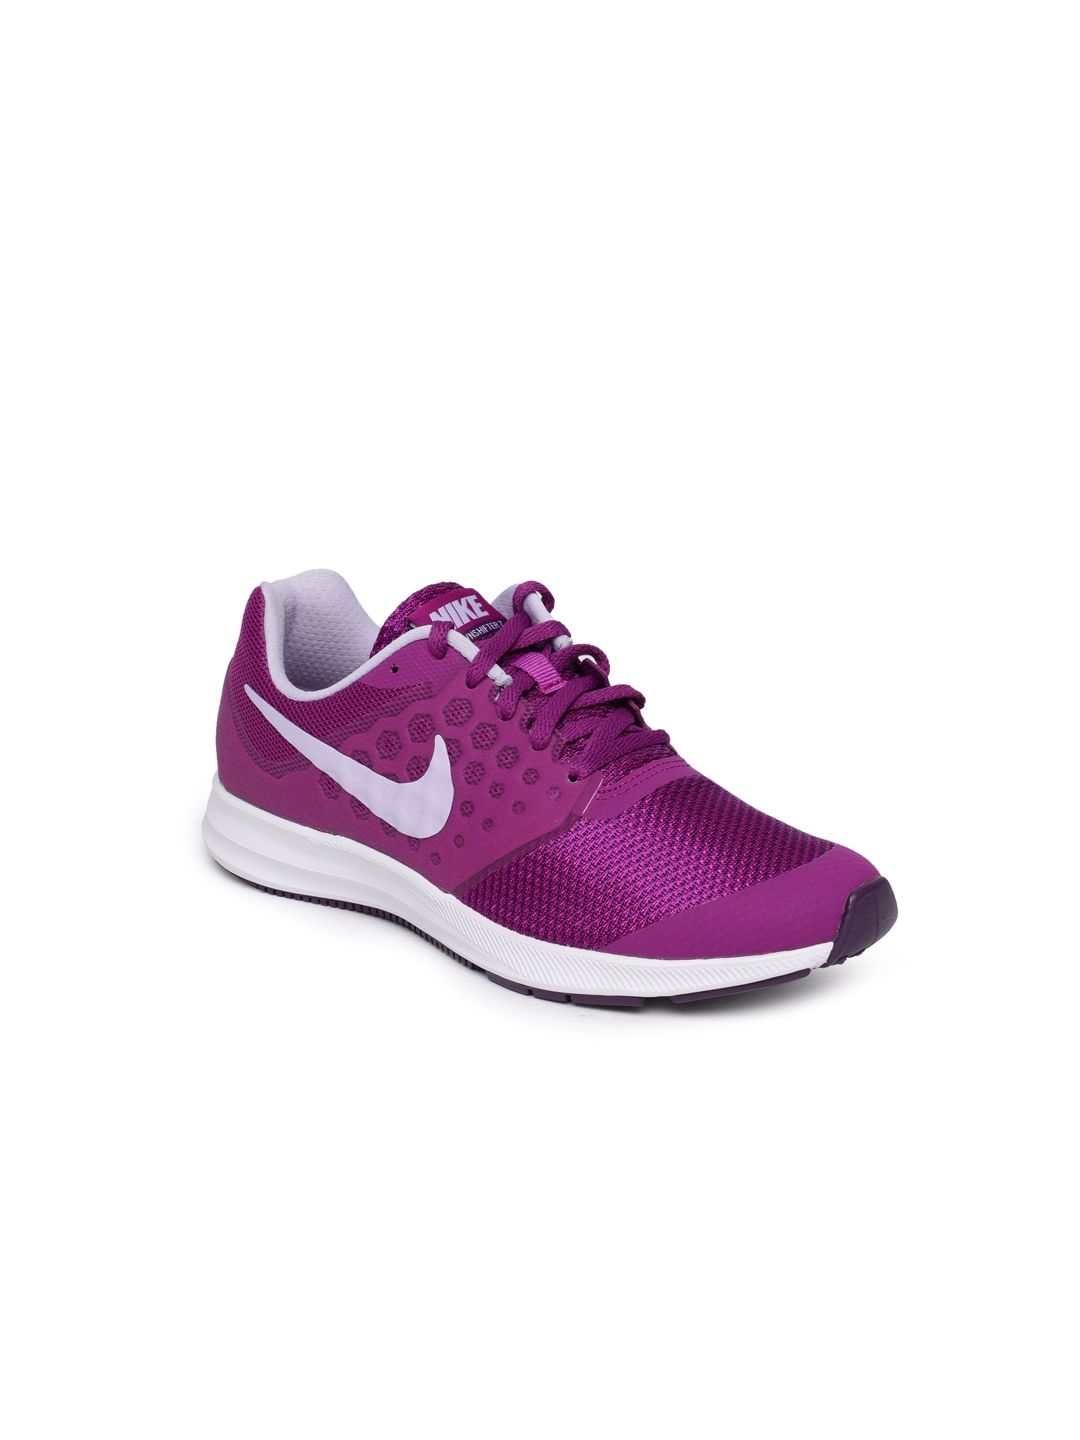 a1e514f1bc6d Buy Nike Girls Purple Downshifter 7 Running Shoes - Sports Shoes for ...